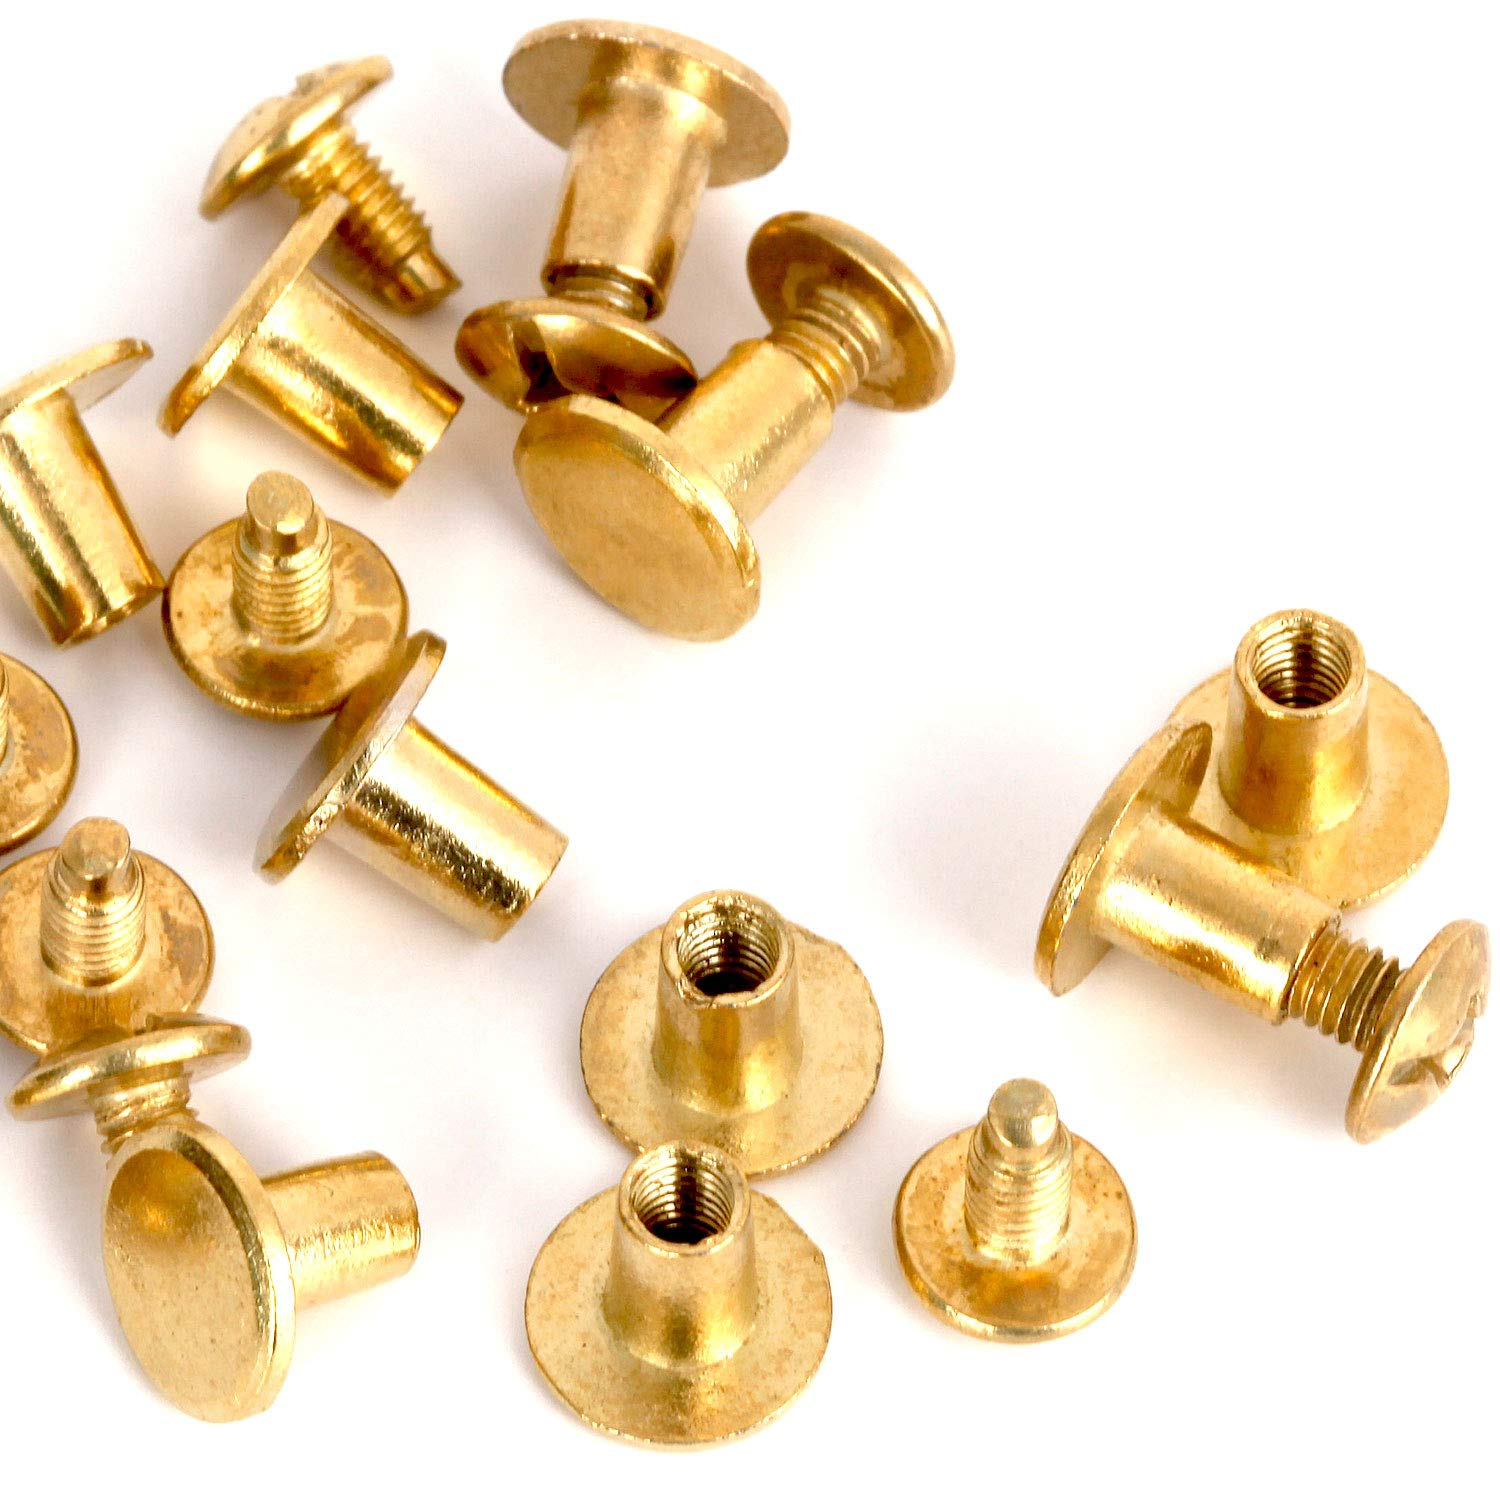 6mm Diameter Brass Plated Compression Rivets Package of 12